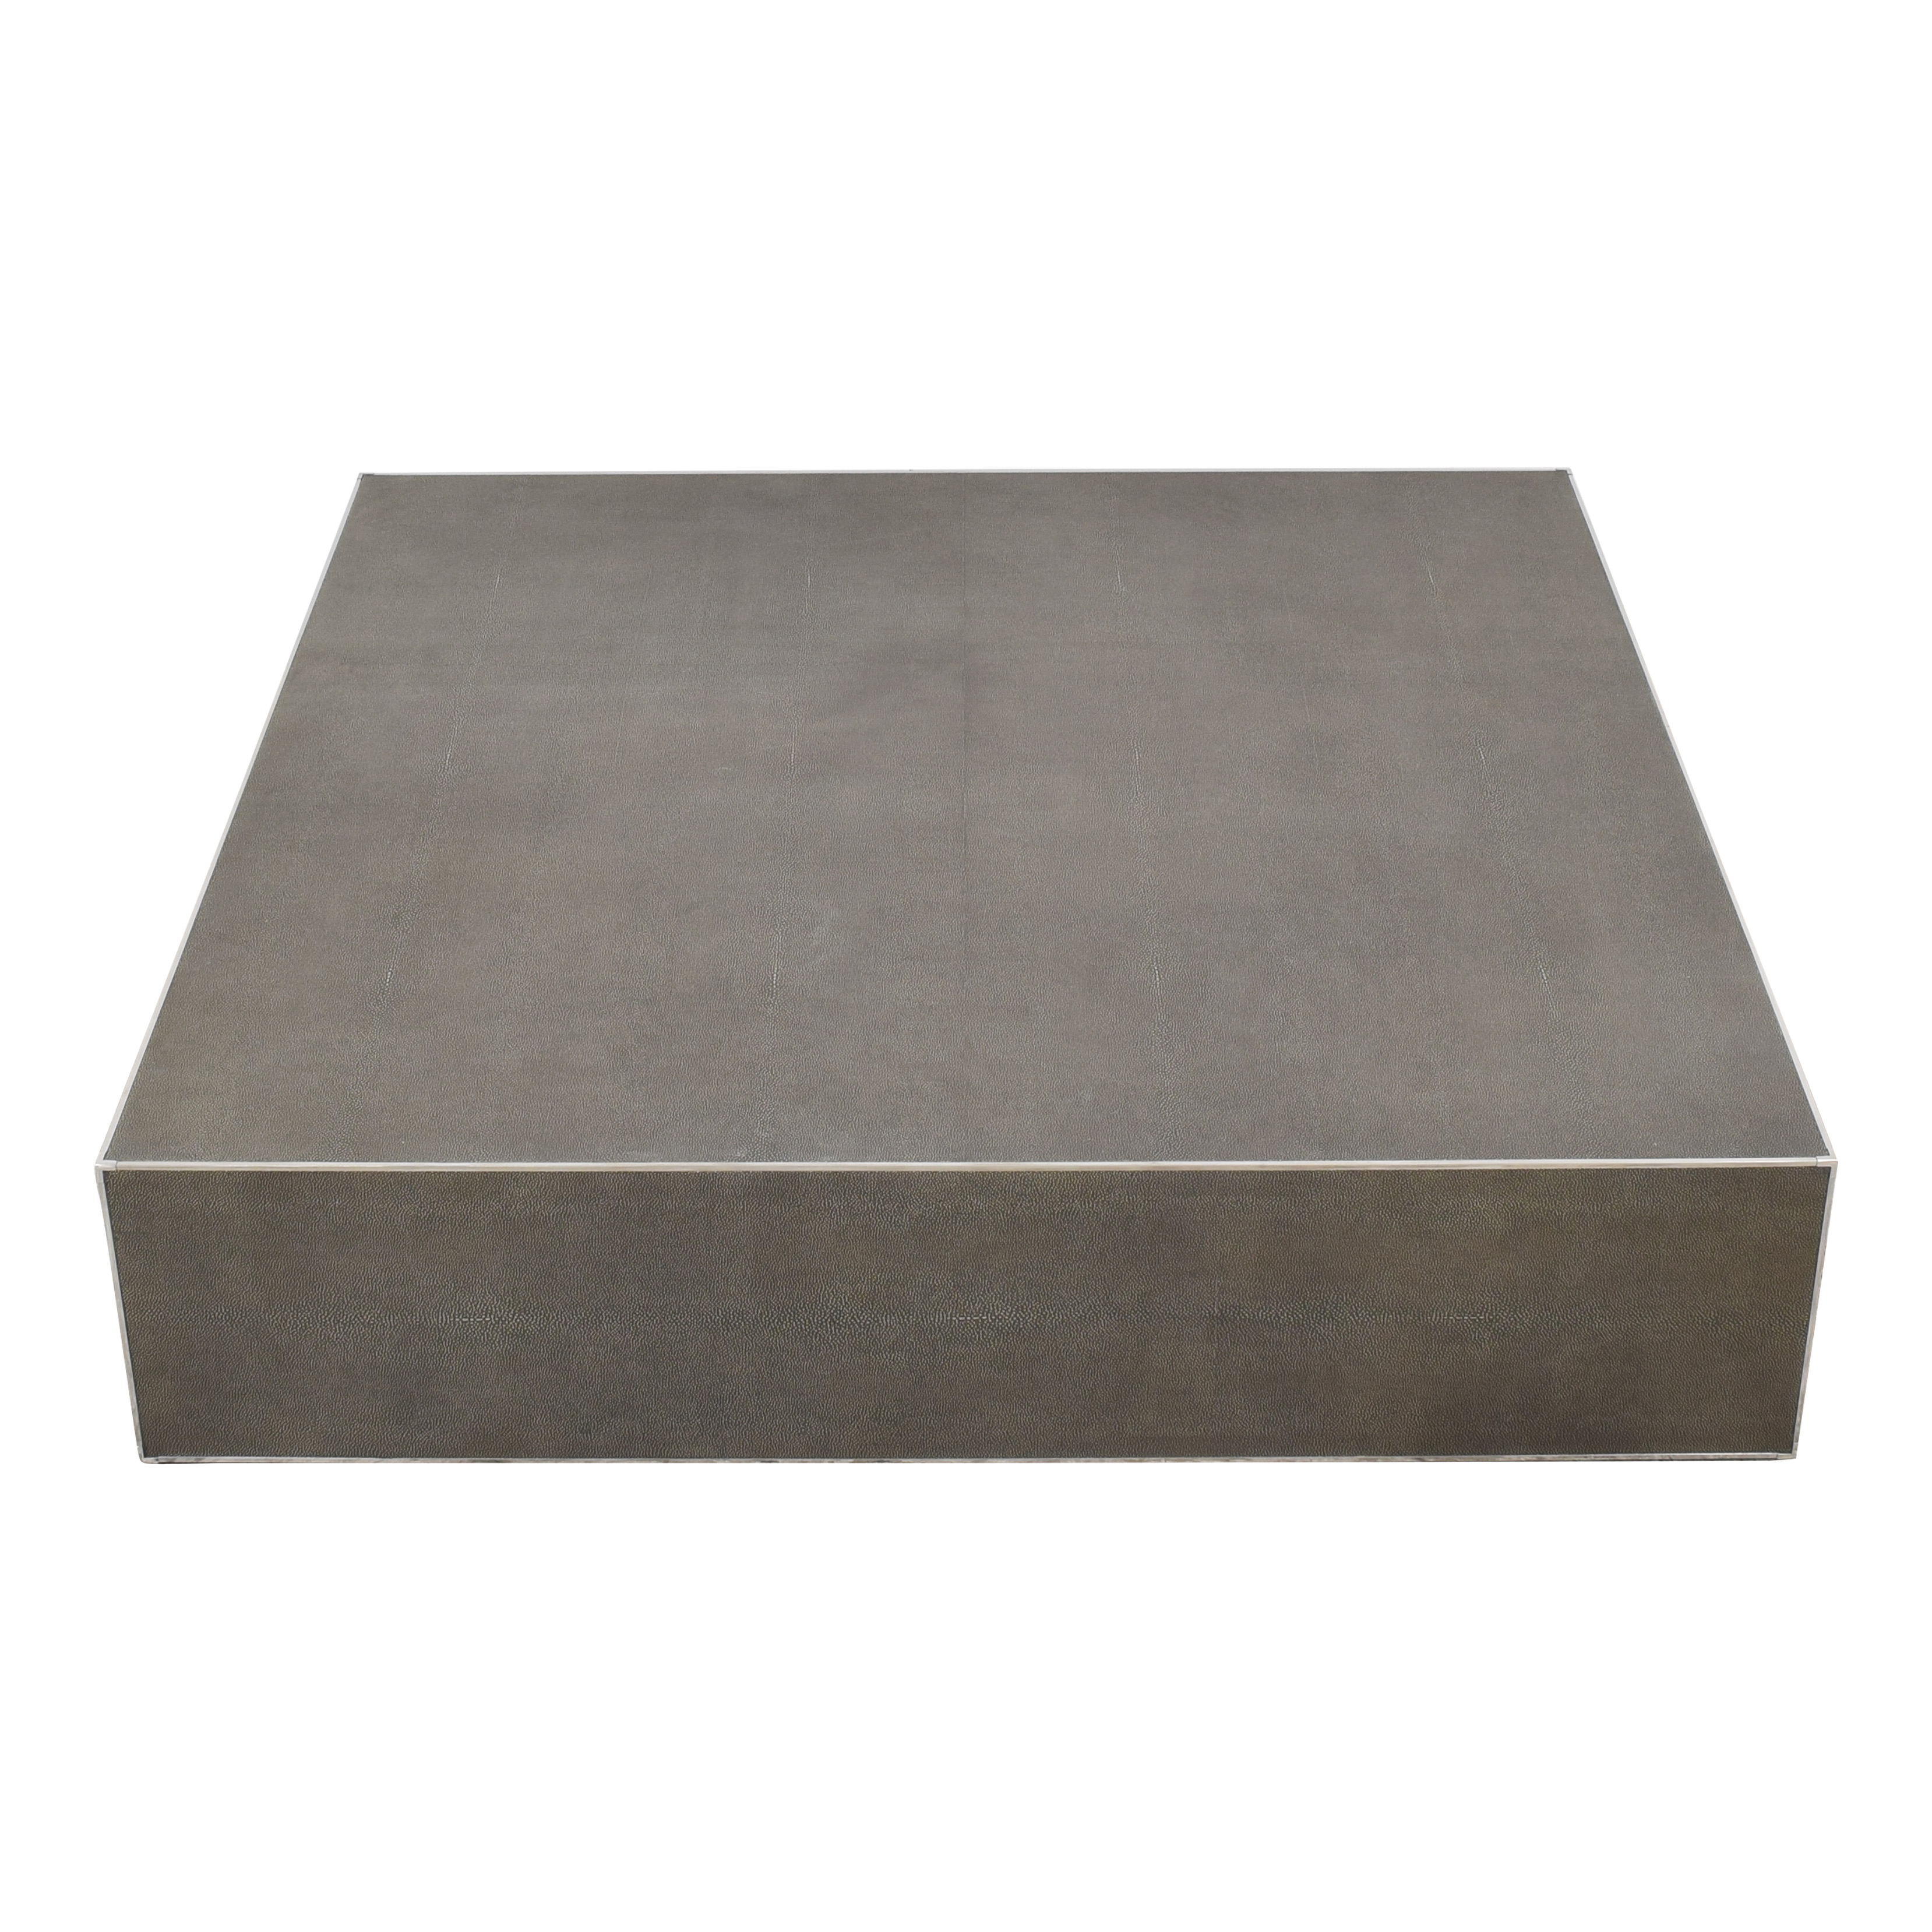 Restoration Hardware Restoration Hardware Saunderson Shagreen Cube Coffee Table Coffee Tables